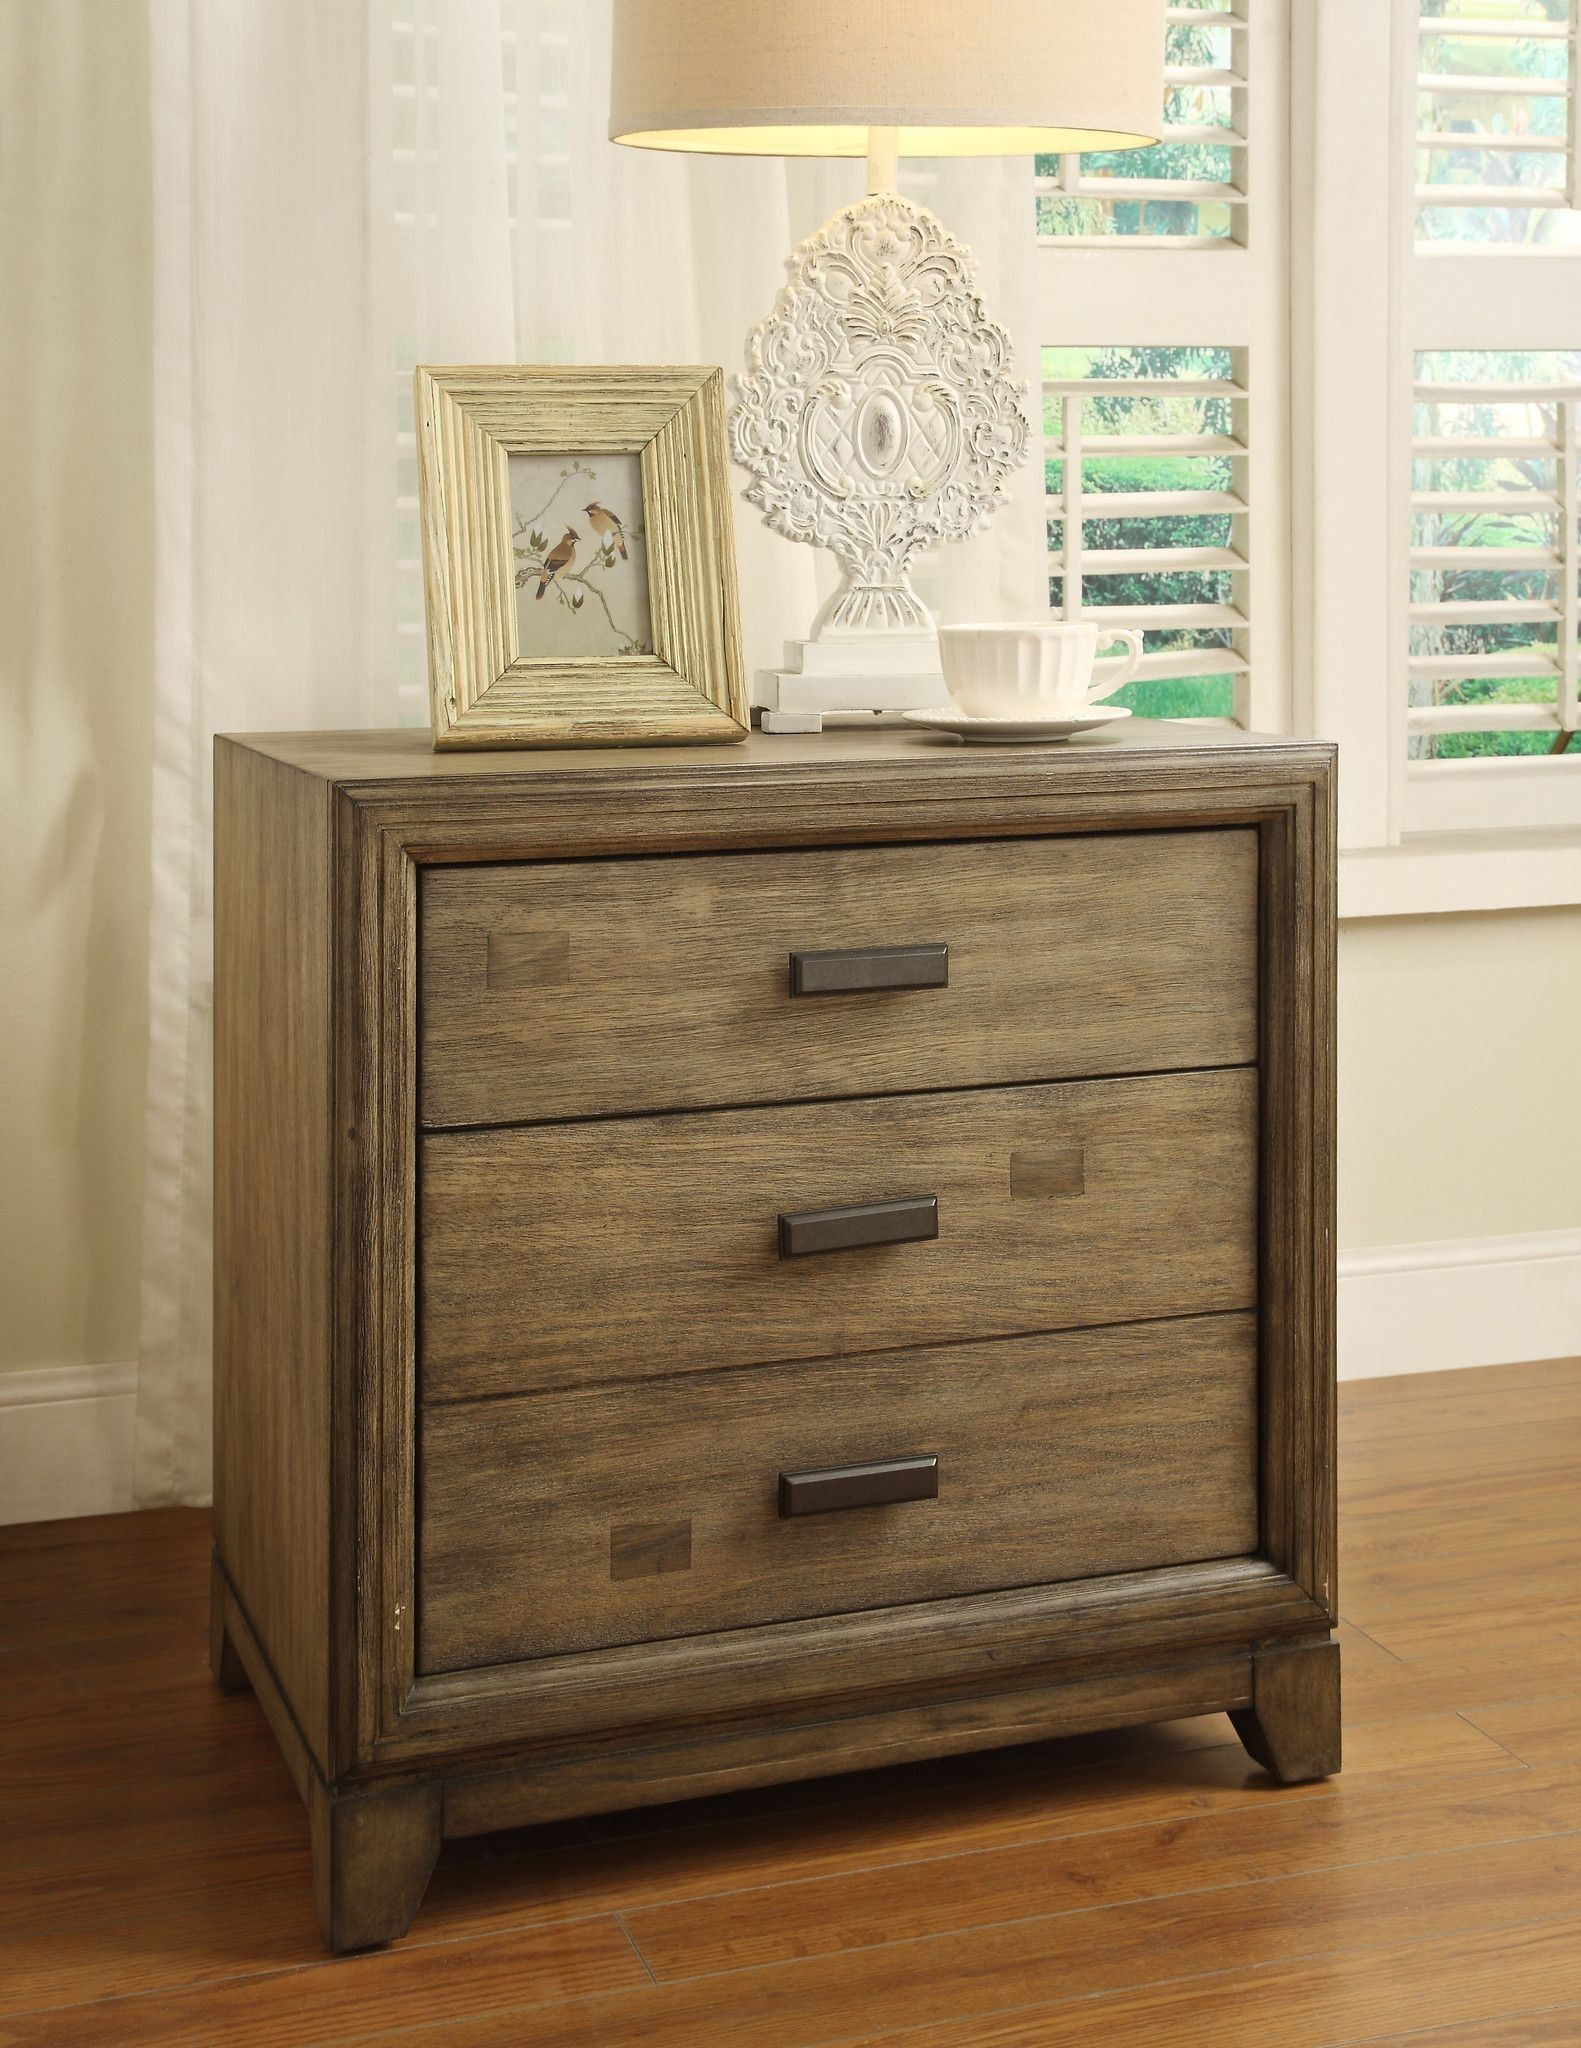 Elegant Nightstand With Outlets Furniture Of America 3 Drawer